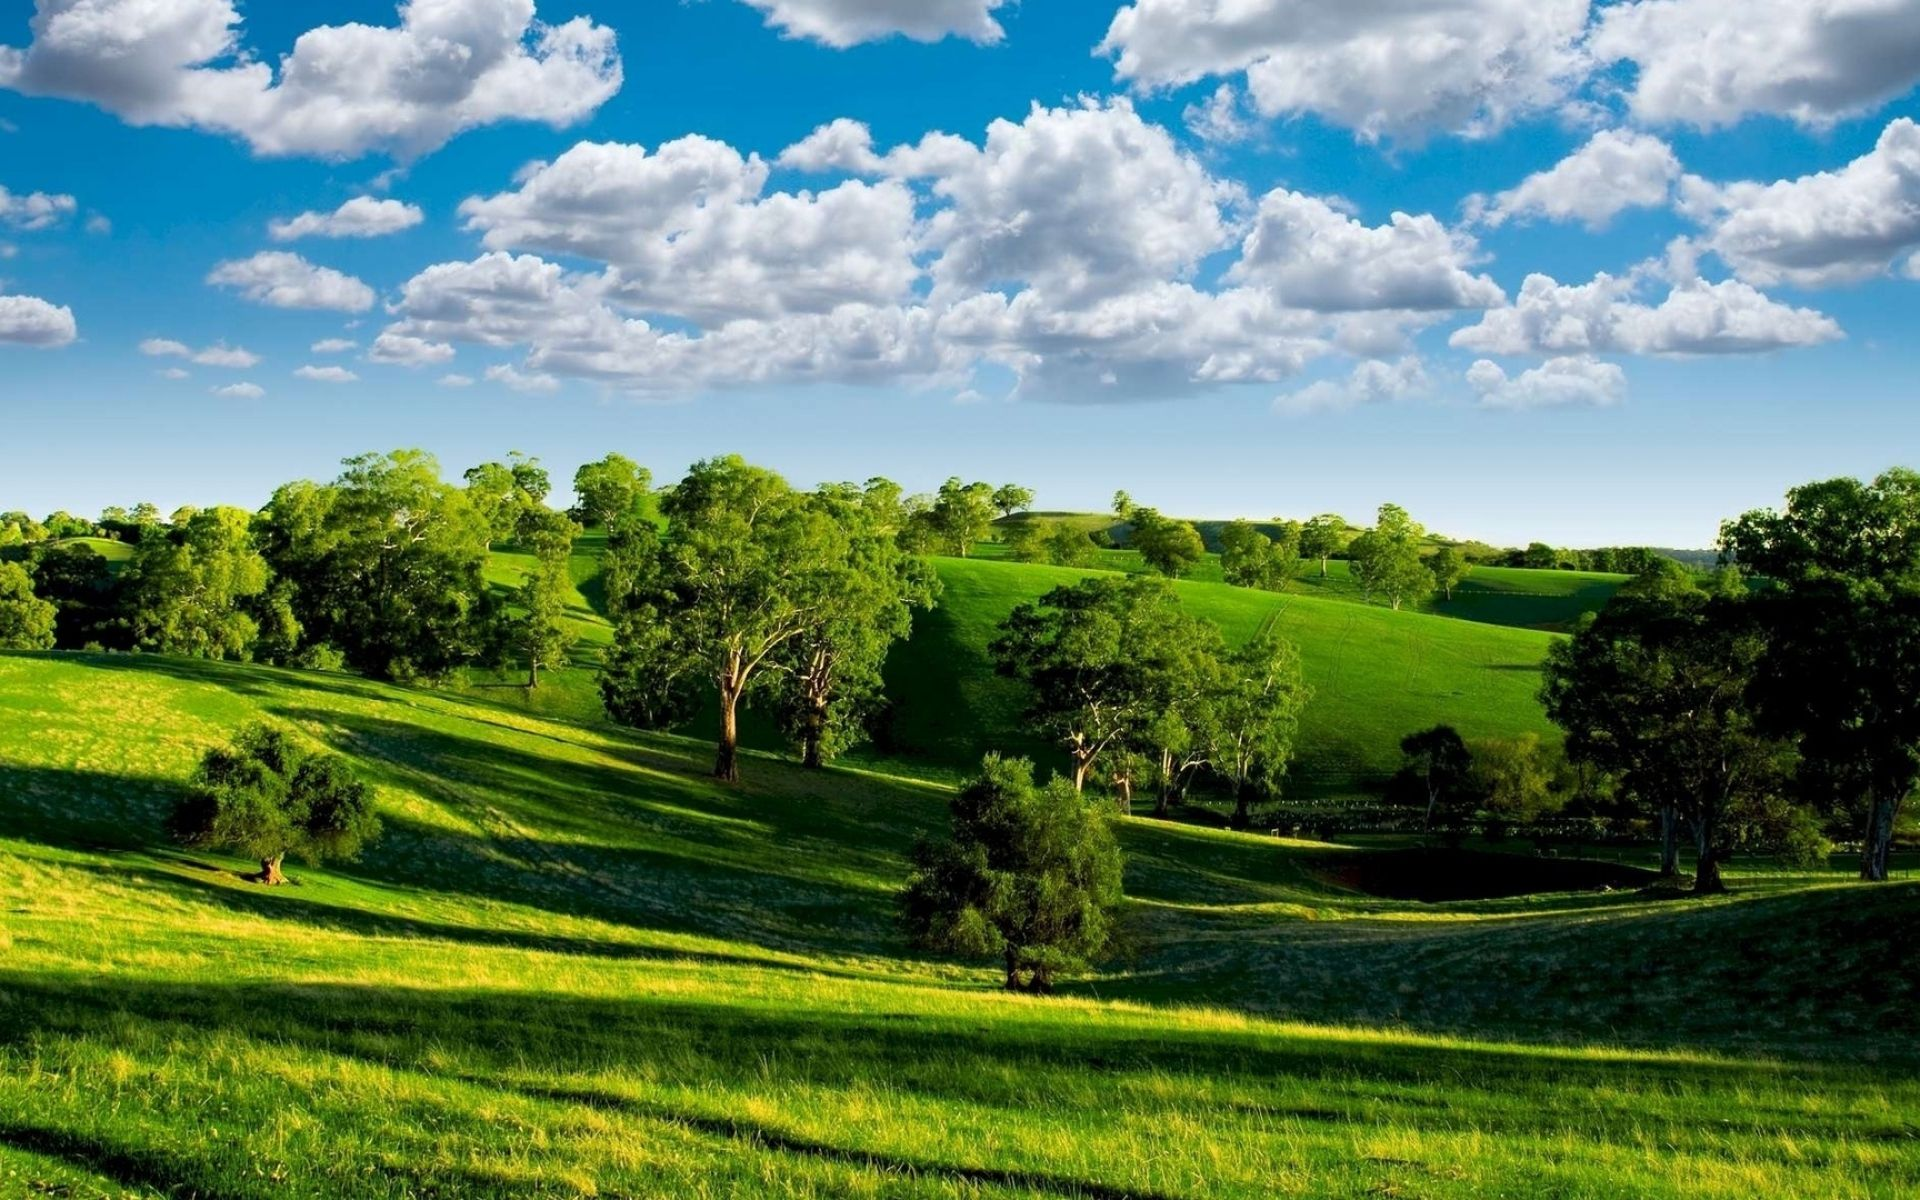 Download Wallpaper 1920x1200 Summer Hills Trees Green Meadows Clouds Sky Ease Landscape Shadows 1920x120 Landscape Wallpaper Landscape Green Landscape